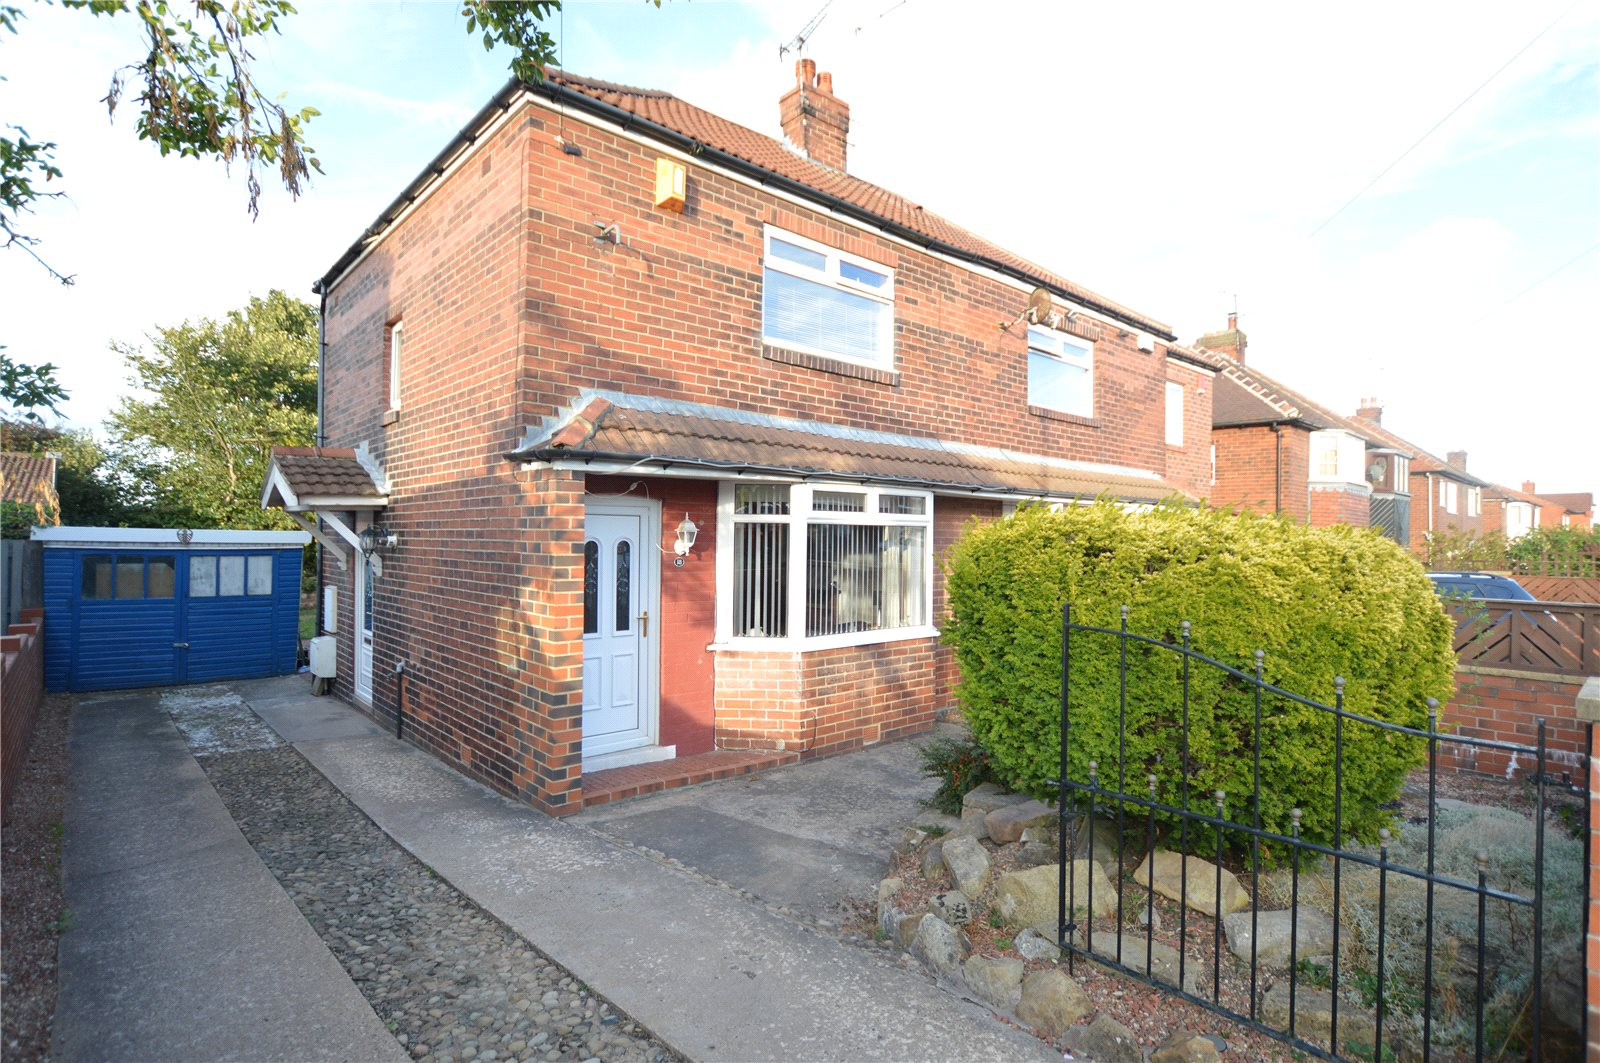 Property for sale in morley, exterior semi detached home